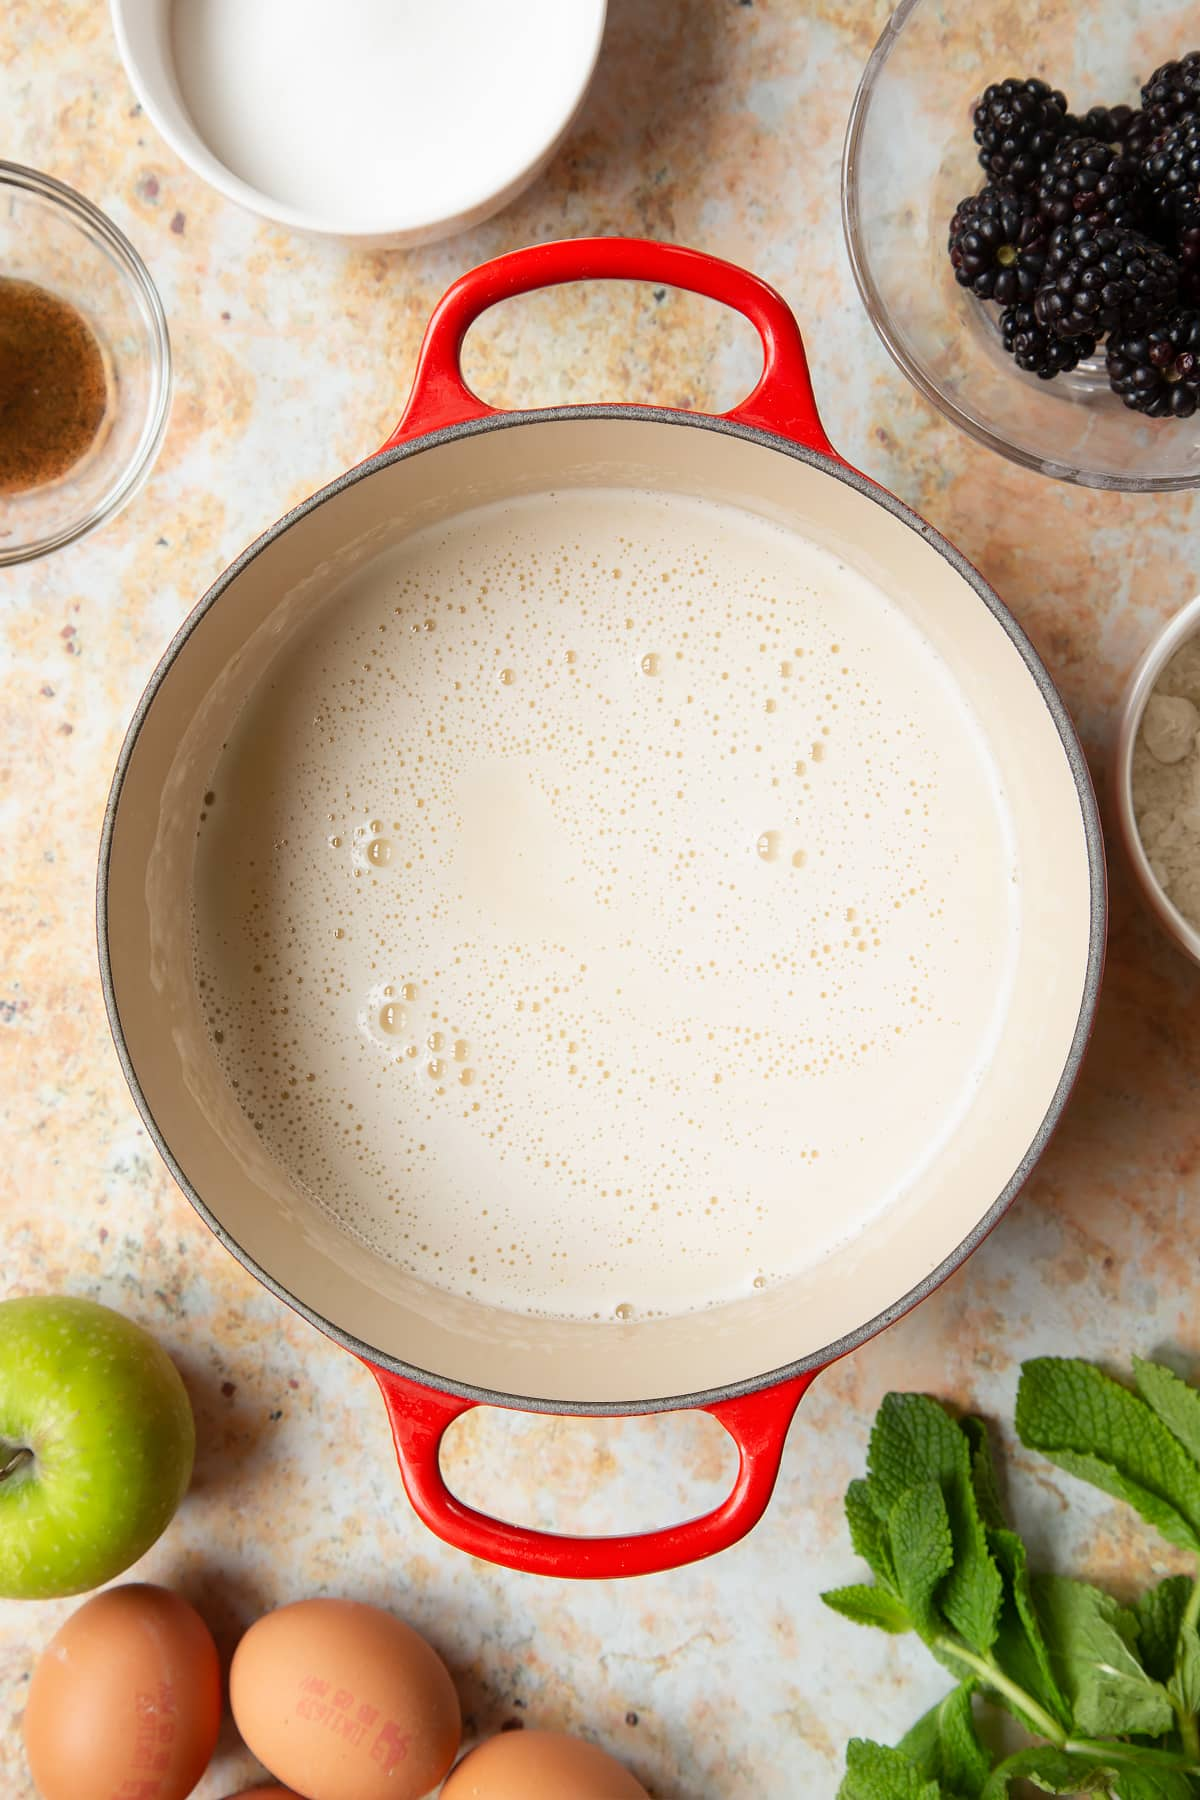 A saucepan filled with milk, eggs, flour, sugar and vanilla, surrounded by ingredients to make blackberry tartlets.